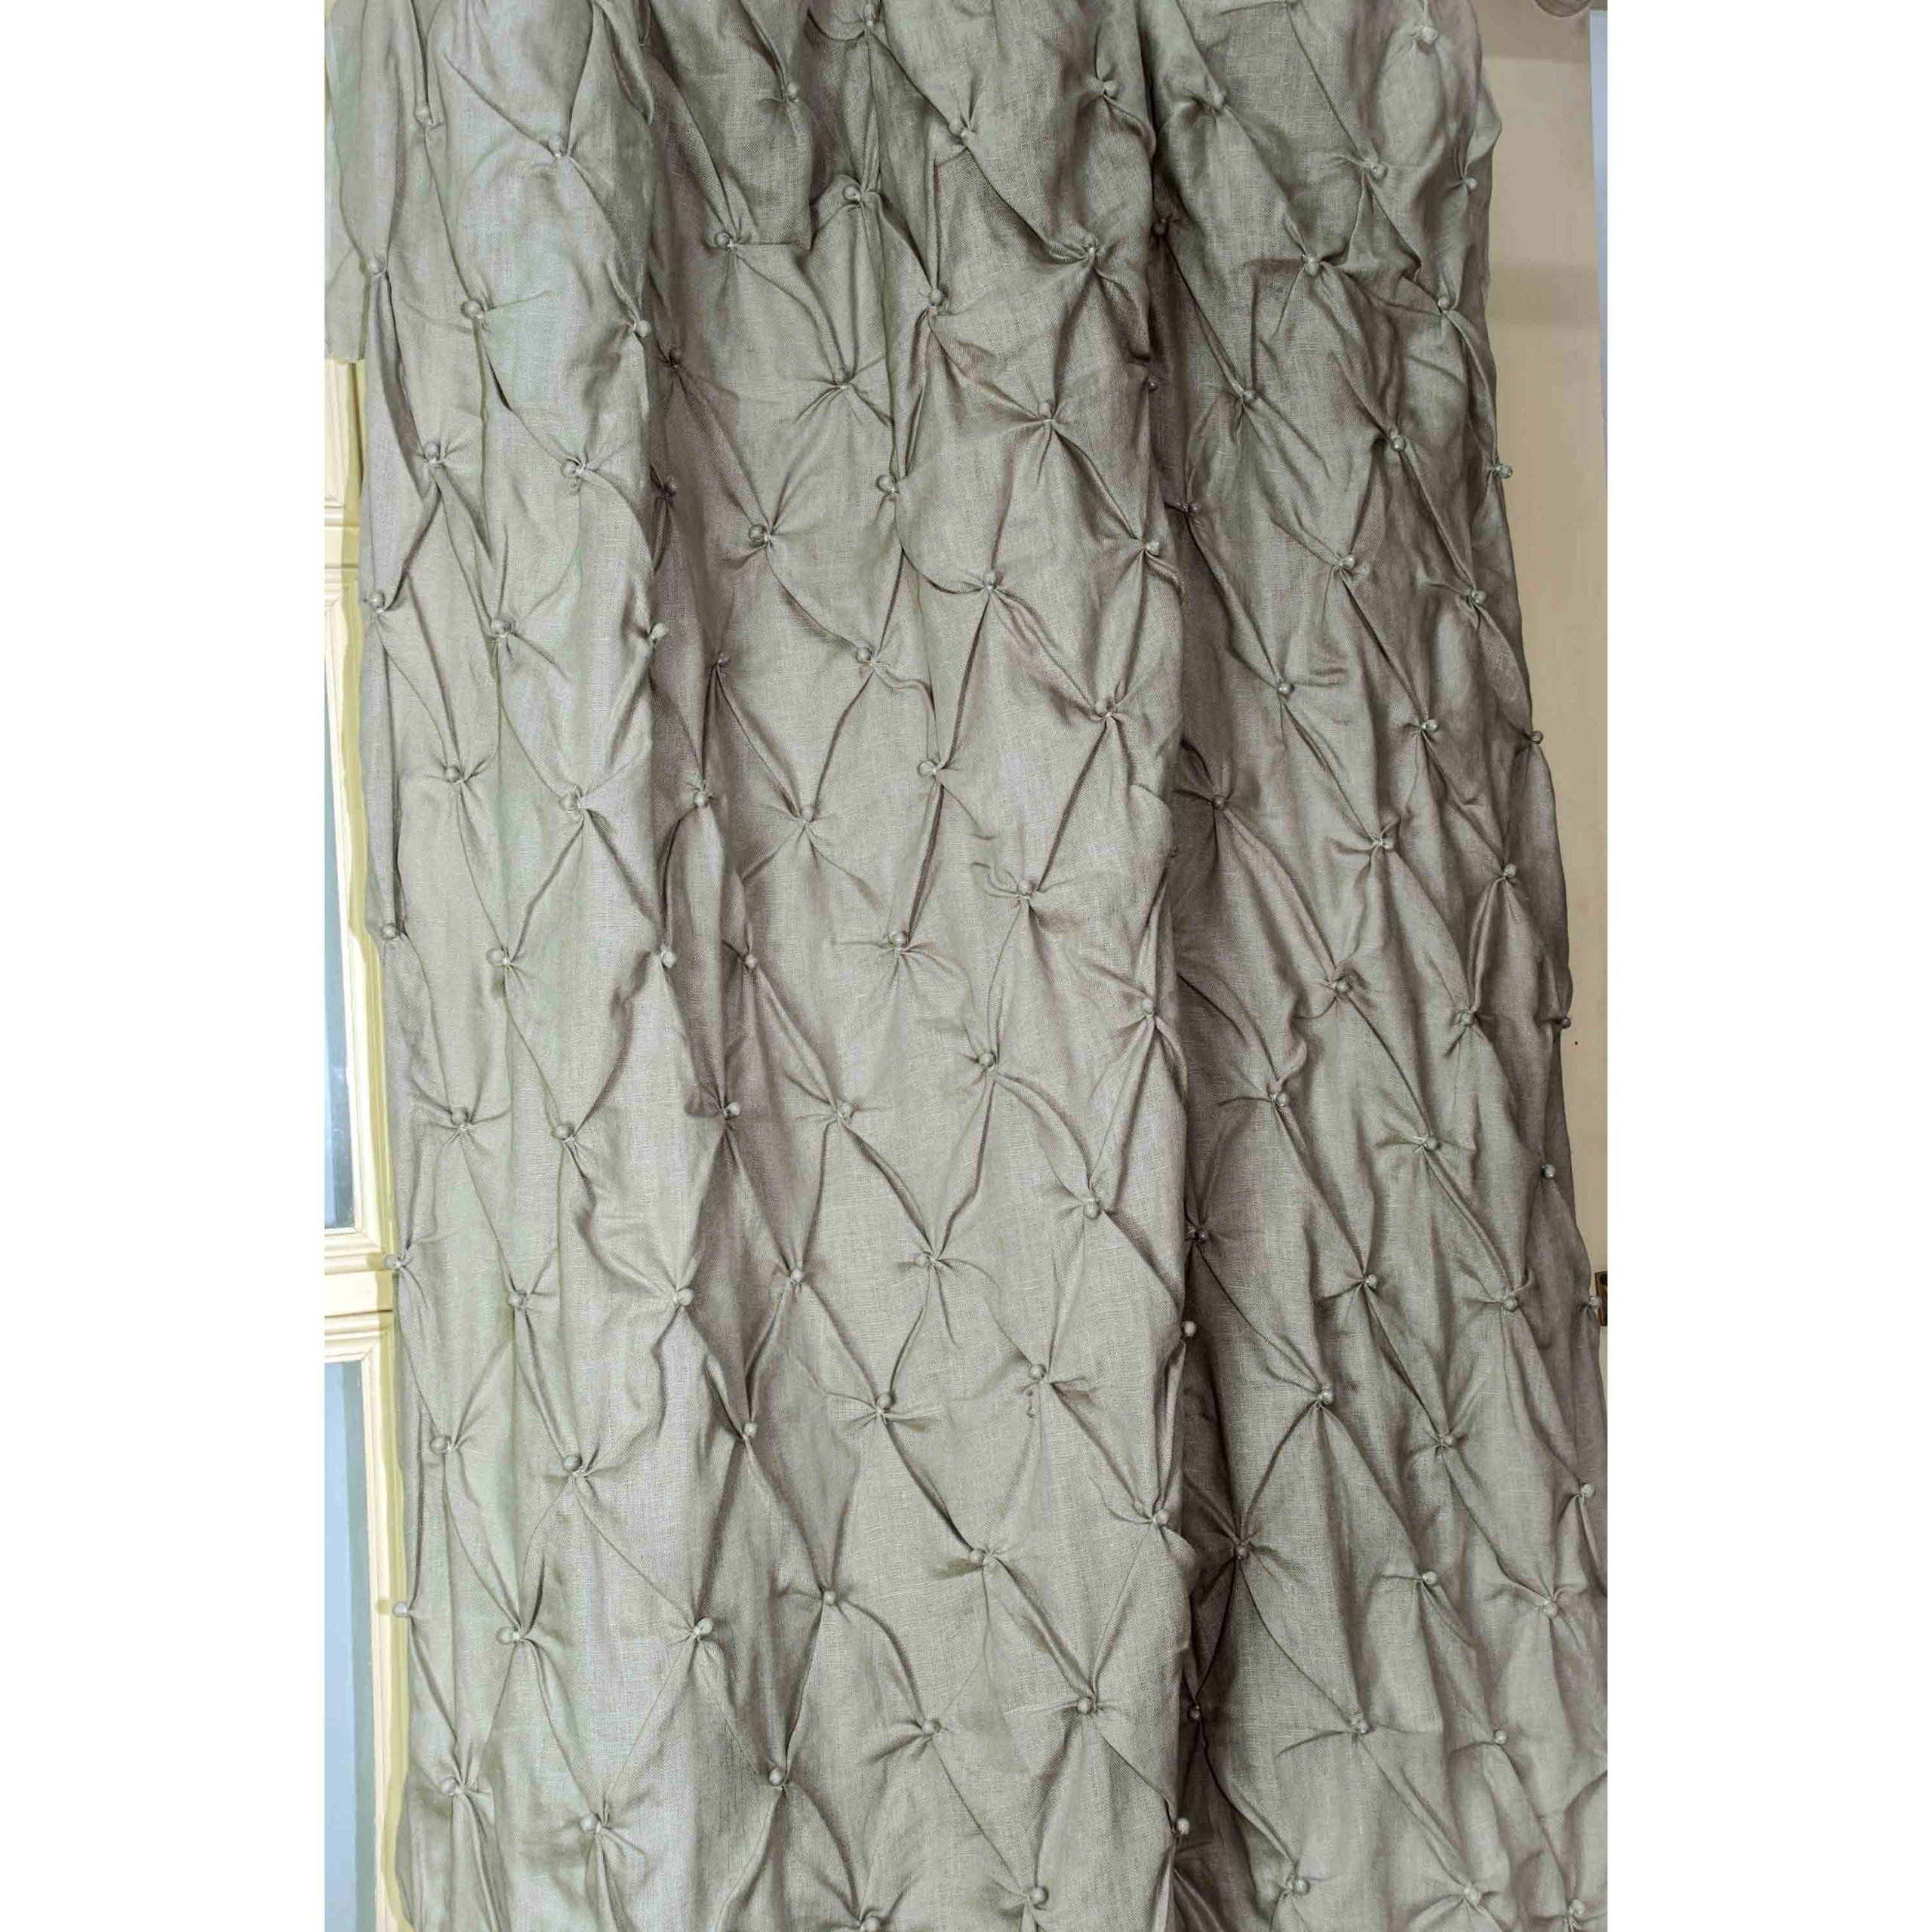 Linen Hand Knotted Curtain Panel Drape Item No D3 SAMZ XOMB